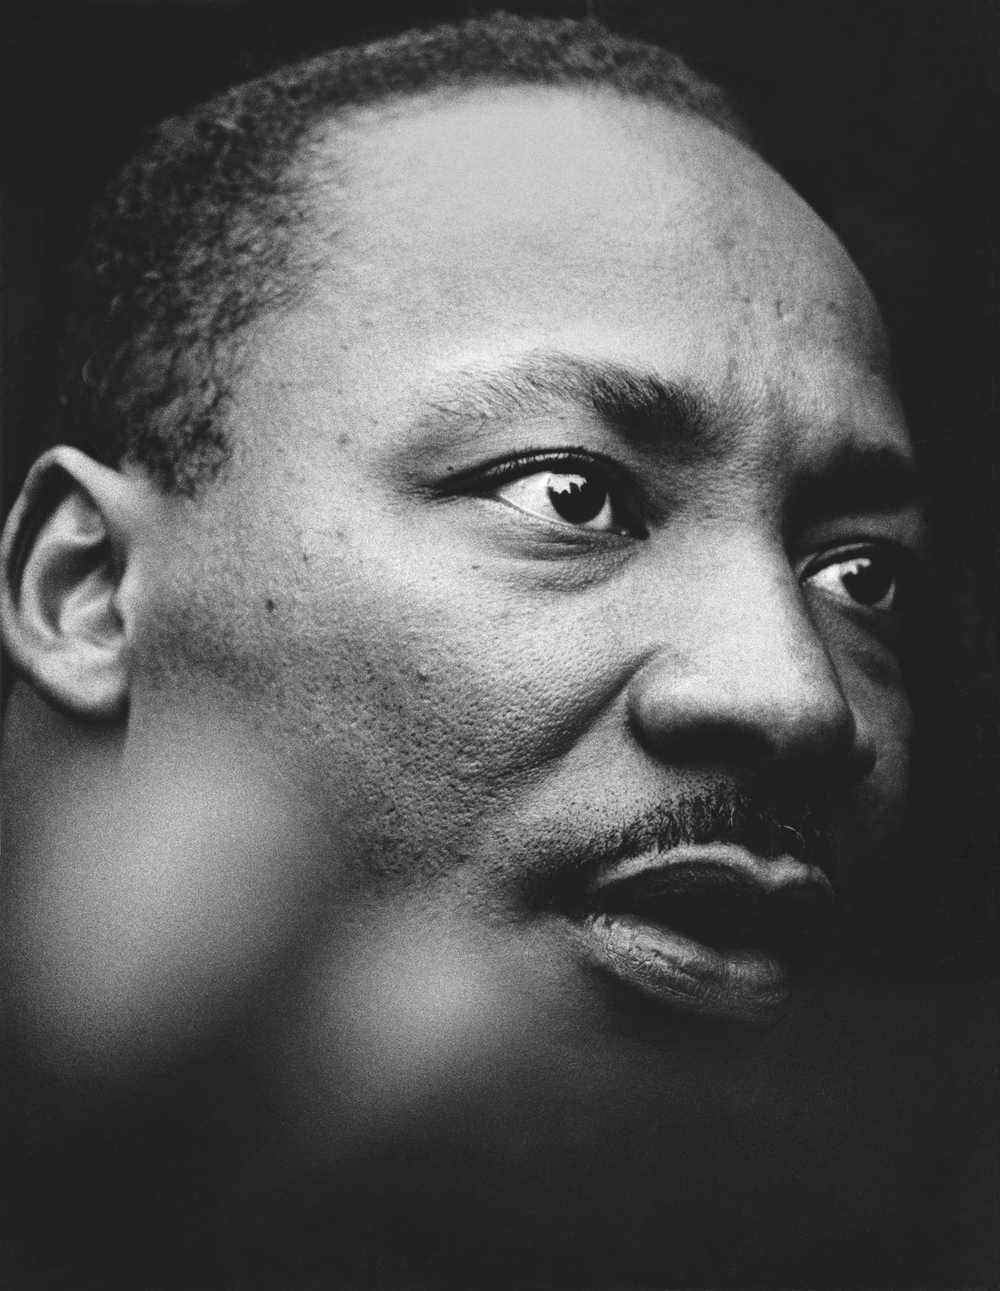 Martin Luther King Jr. outside the UN building delivering a speech denouncing the Vietnam War. We can see the UN building reflected in his eyes.  April 15, 1967  © Jean-Pierre Laffont